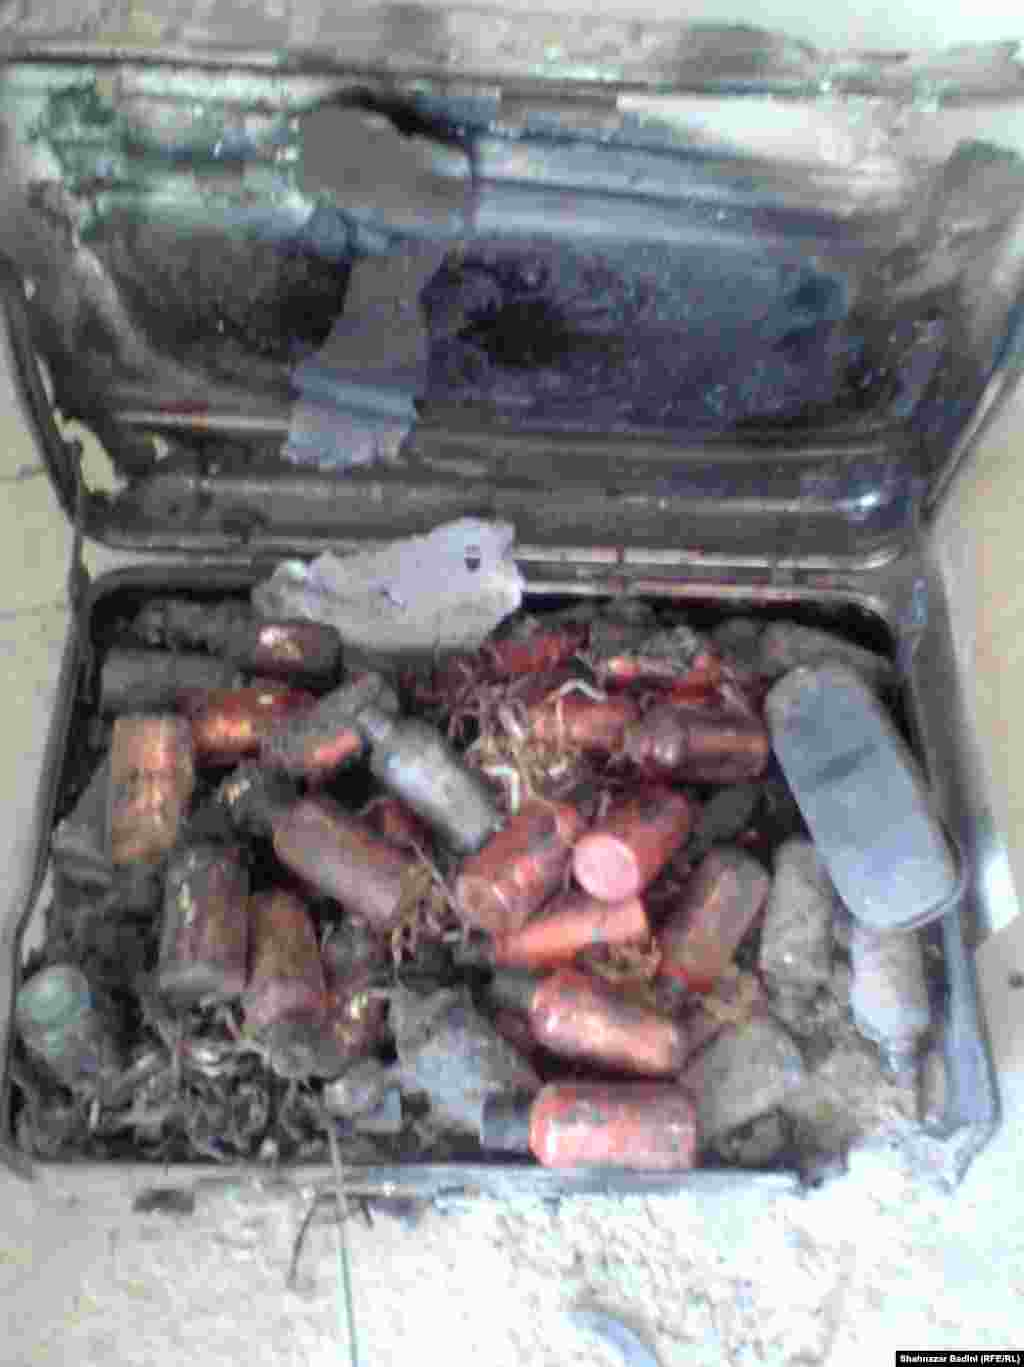 The Taliban leader's suitcase, which apparently shows a lot of bottles of an unknown chemical or medicine. Some media reports suggest he had gone to Iran for medical treatment.